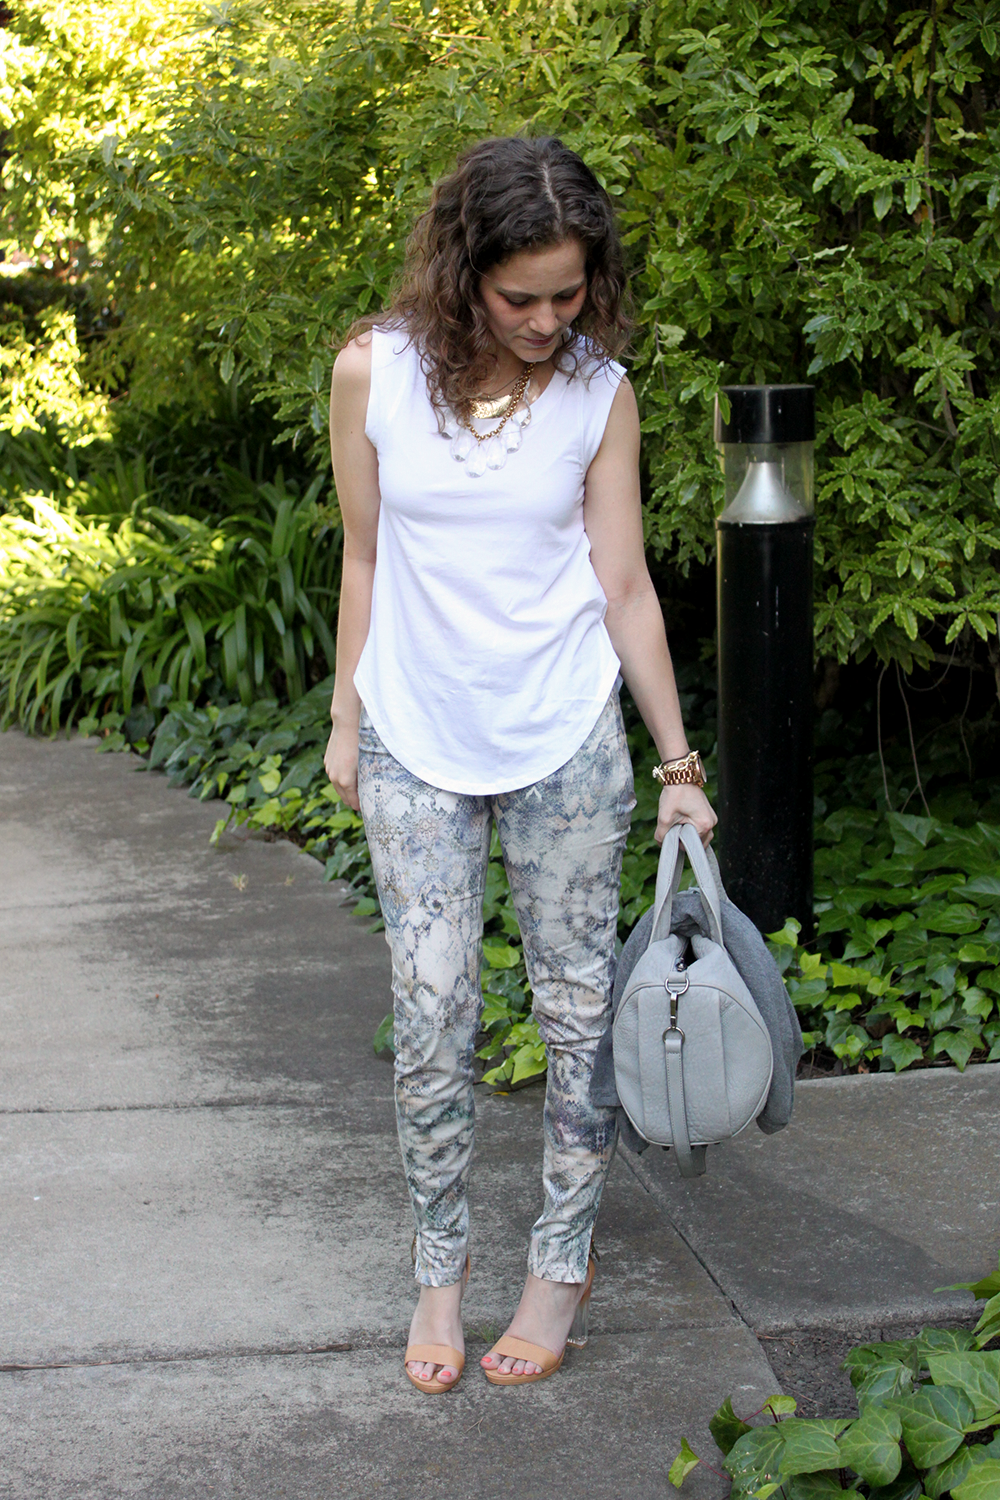 snakeskin pants and plain white tee - undeniable style